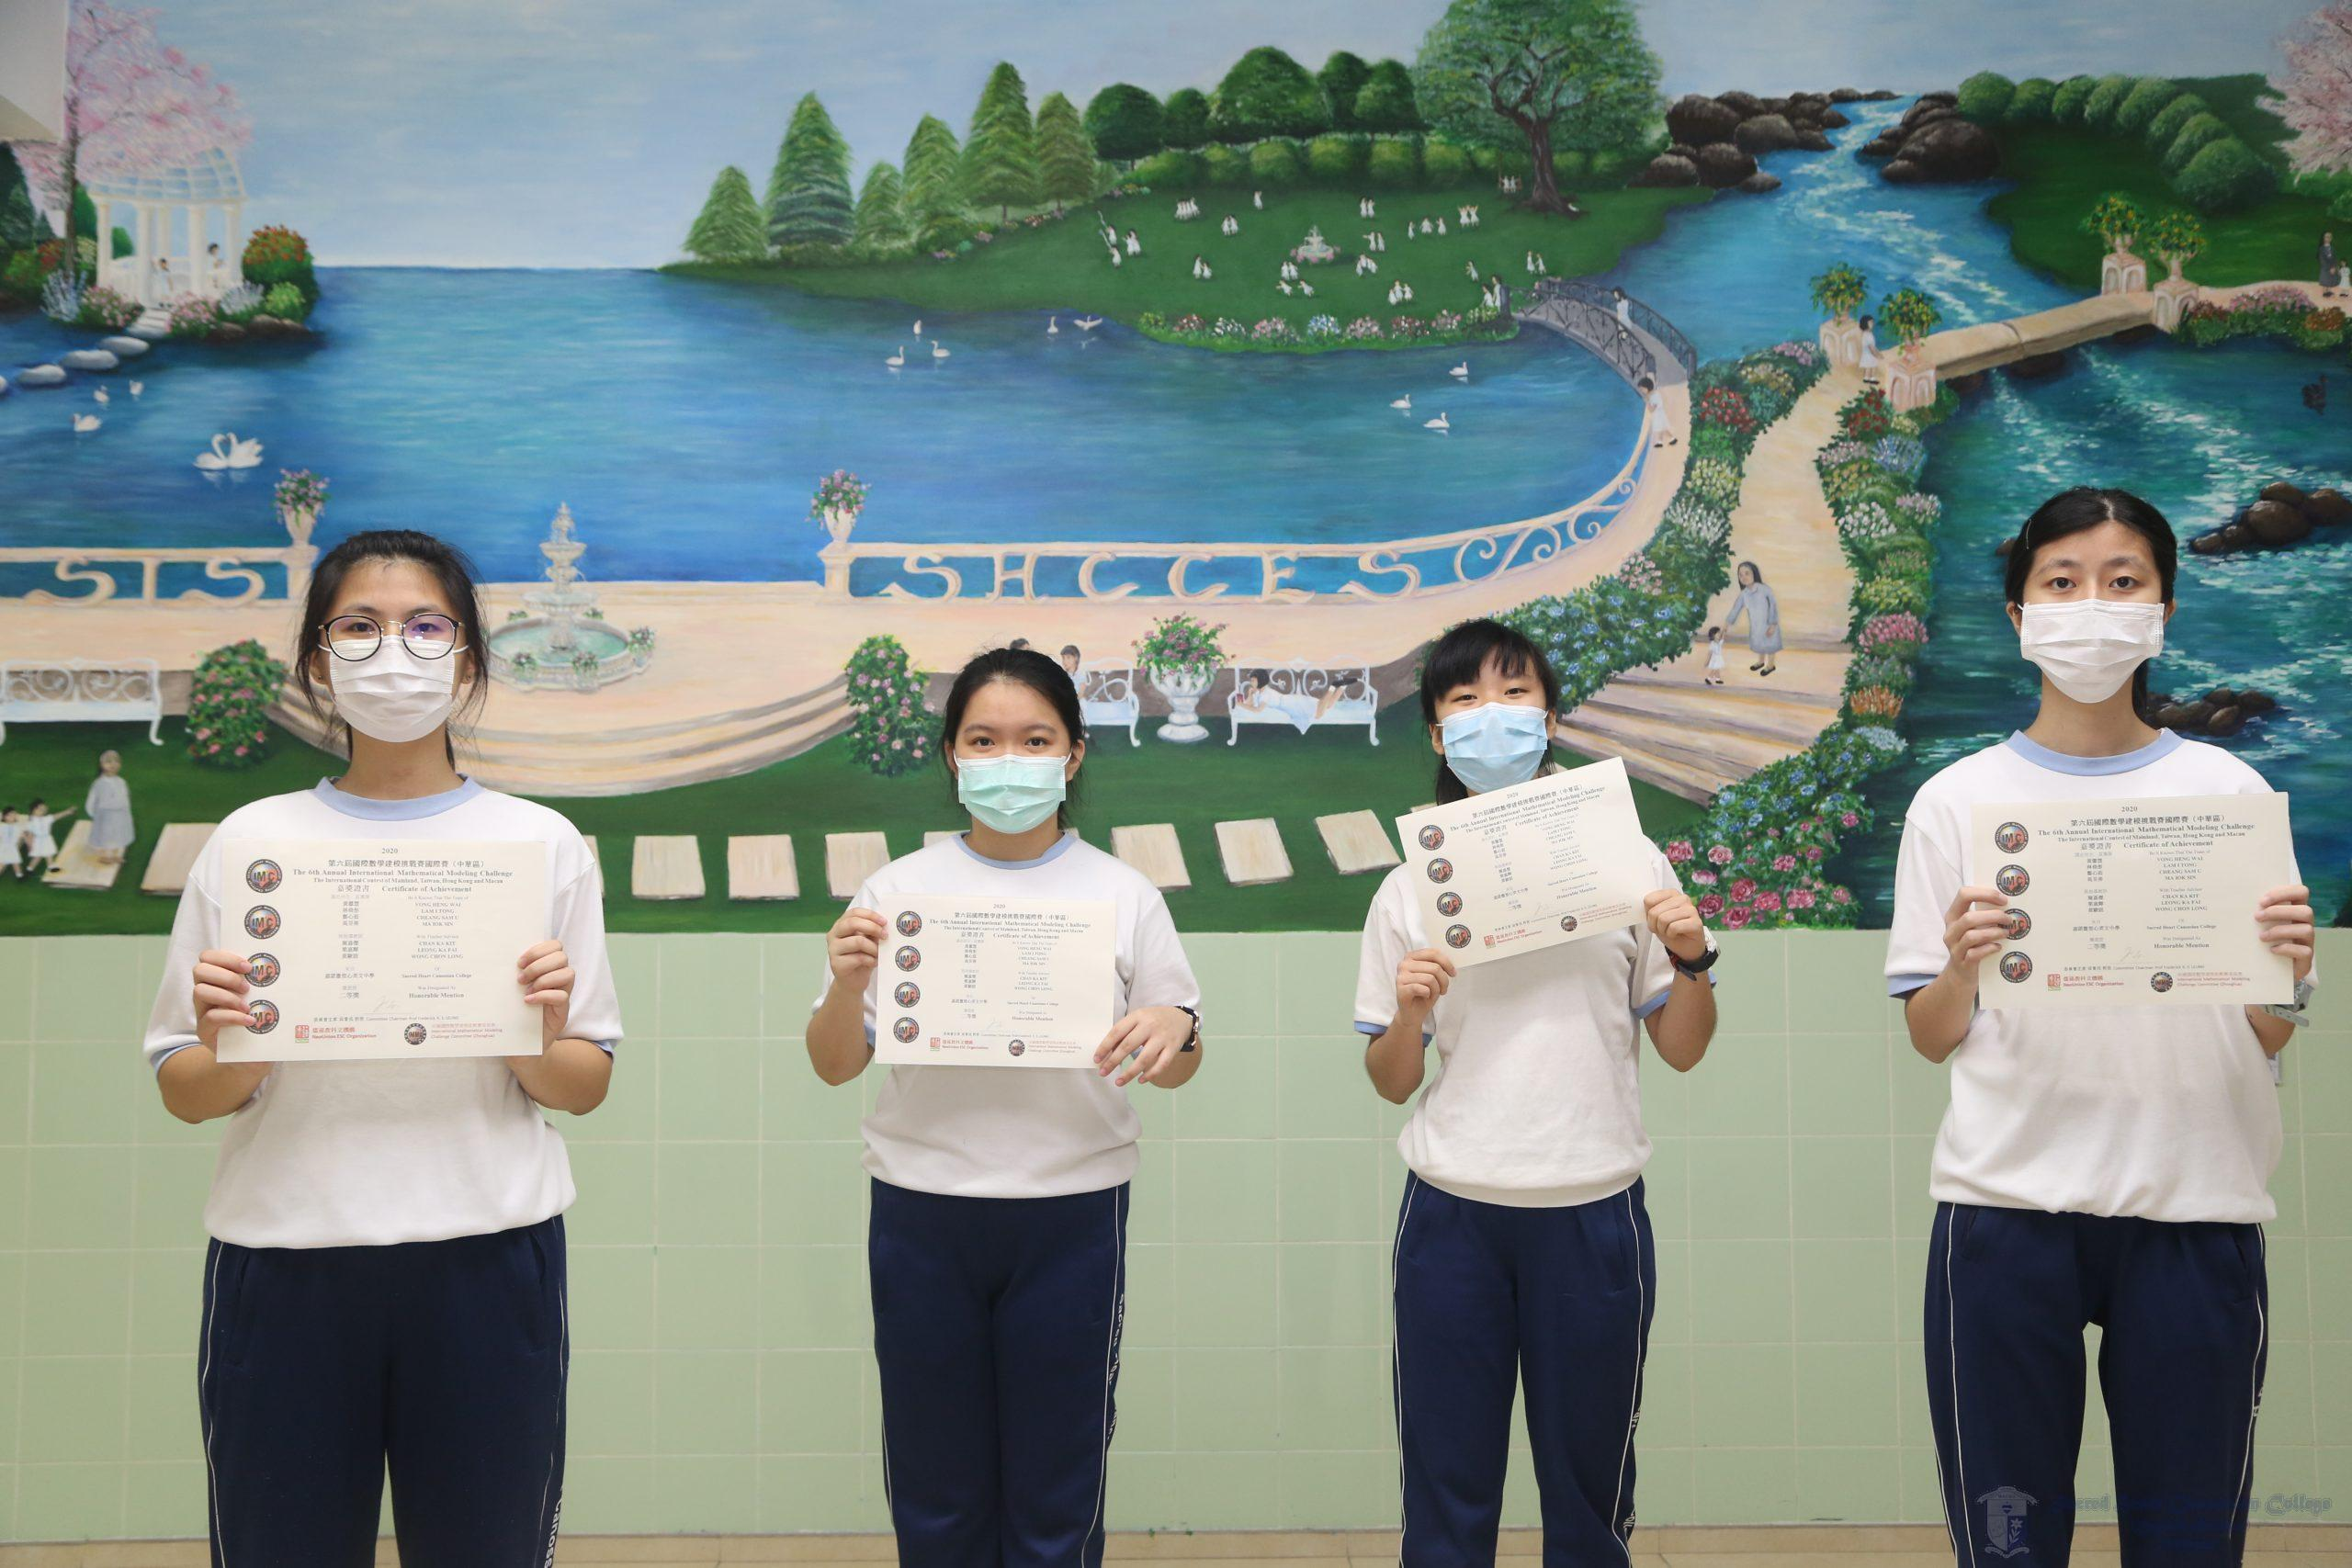 其他獲獎隊伍合照 Ausilia Vong (Form 5A), Sammi Cheang (Form 5A), Debbie Lam (Form 5A), Mildred Ma (Form 5A)